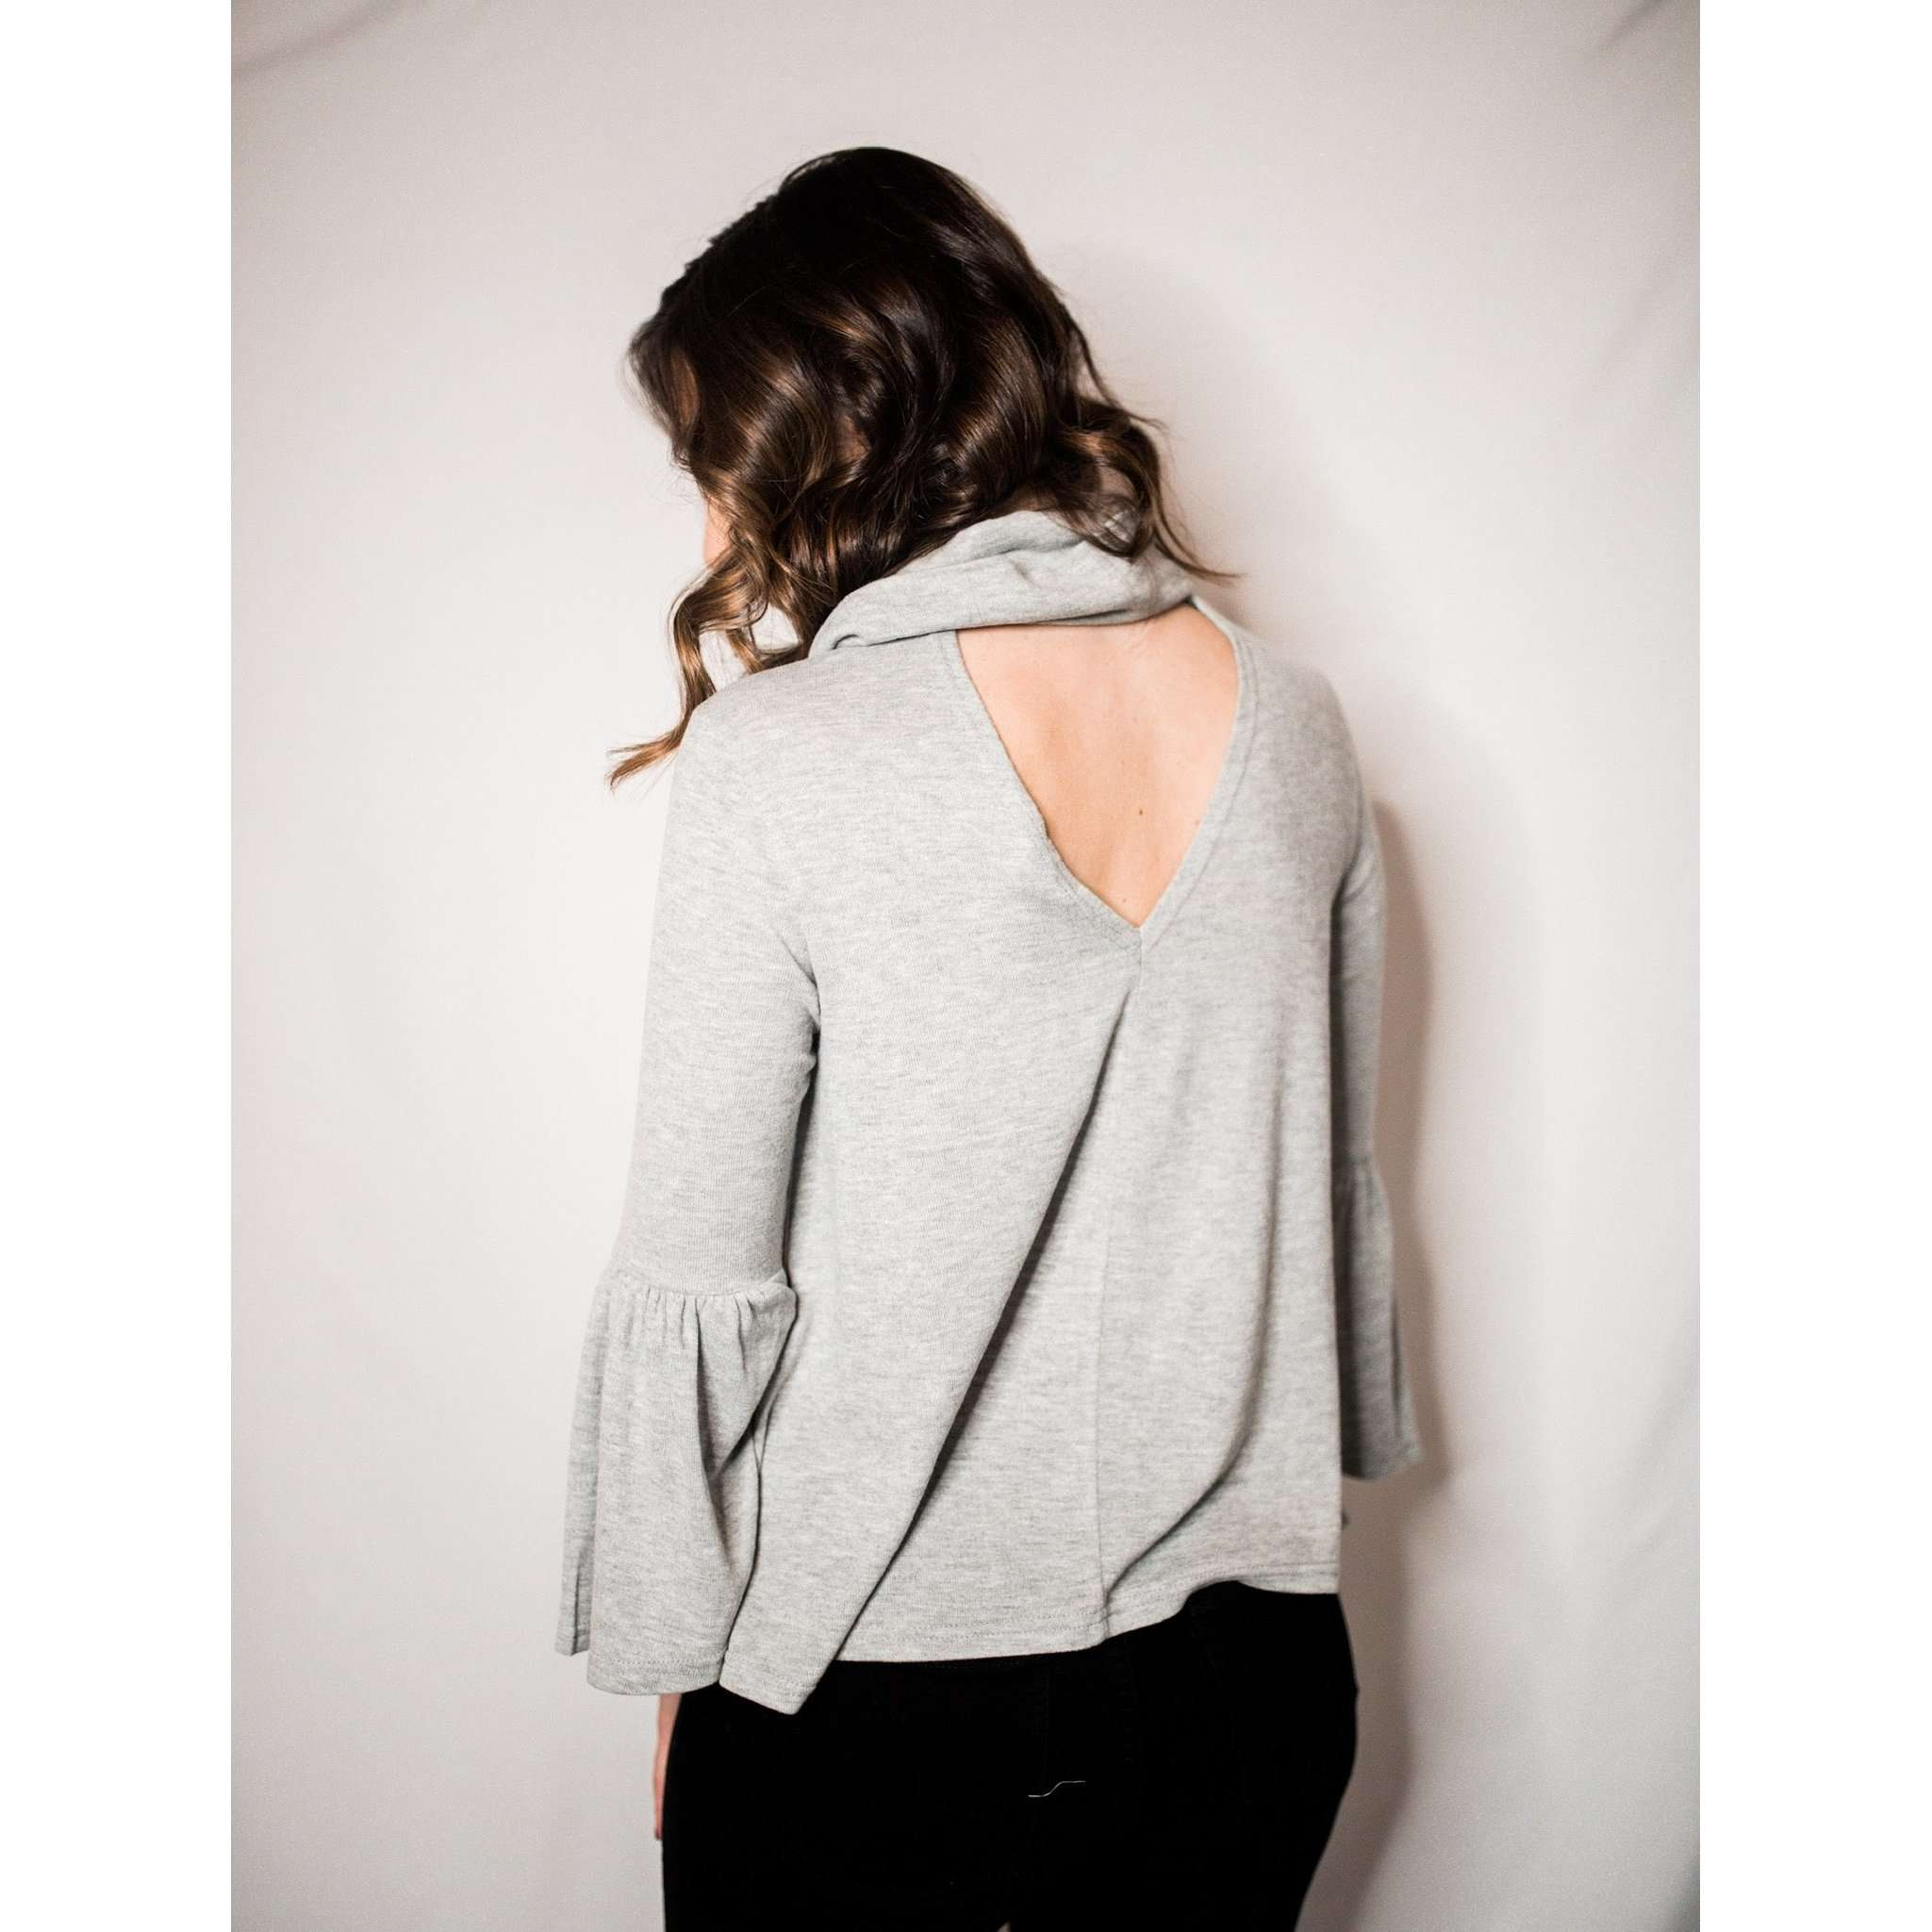 8.28 Boutique:Jack by BB Dakota,Jack by BB Dakota Greatest Knits Grey Sweater,Tops